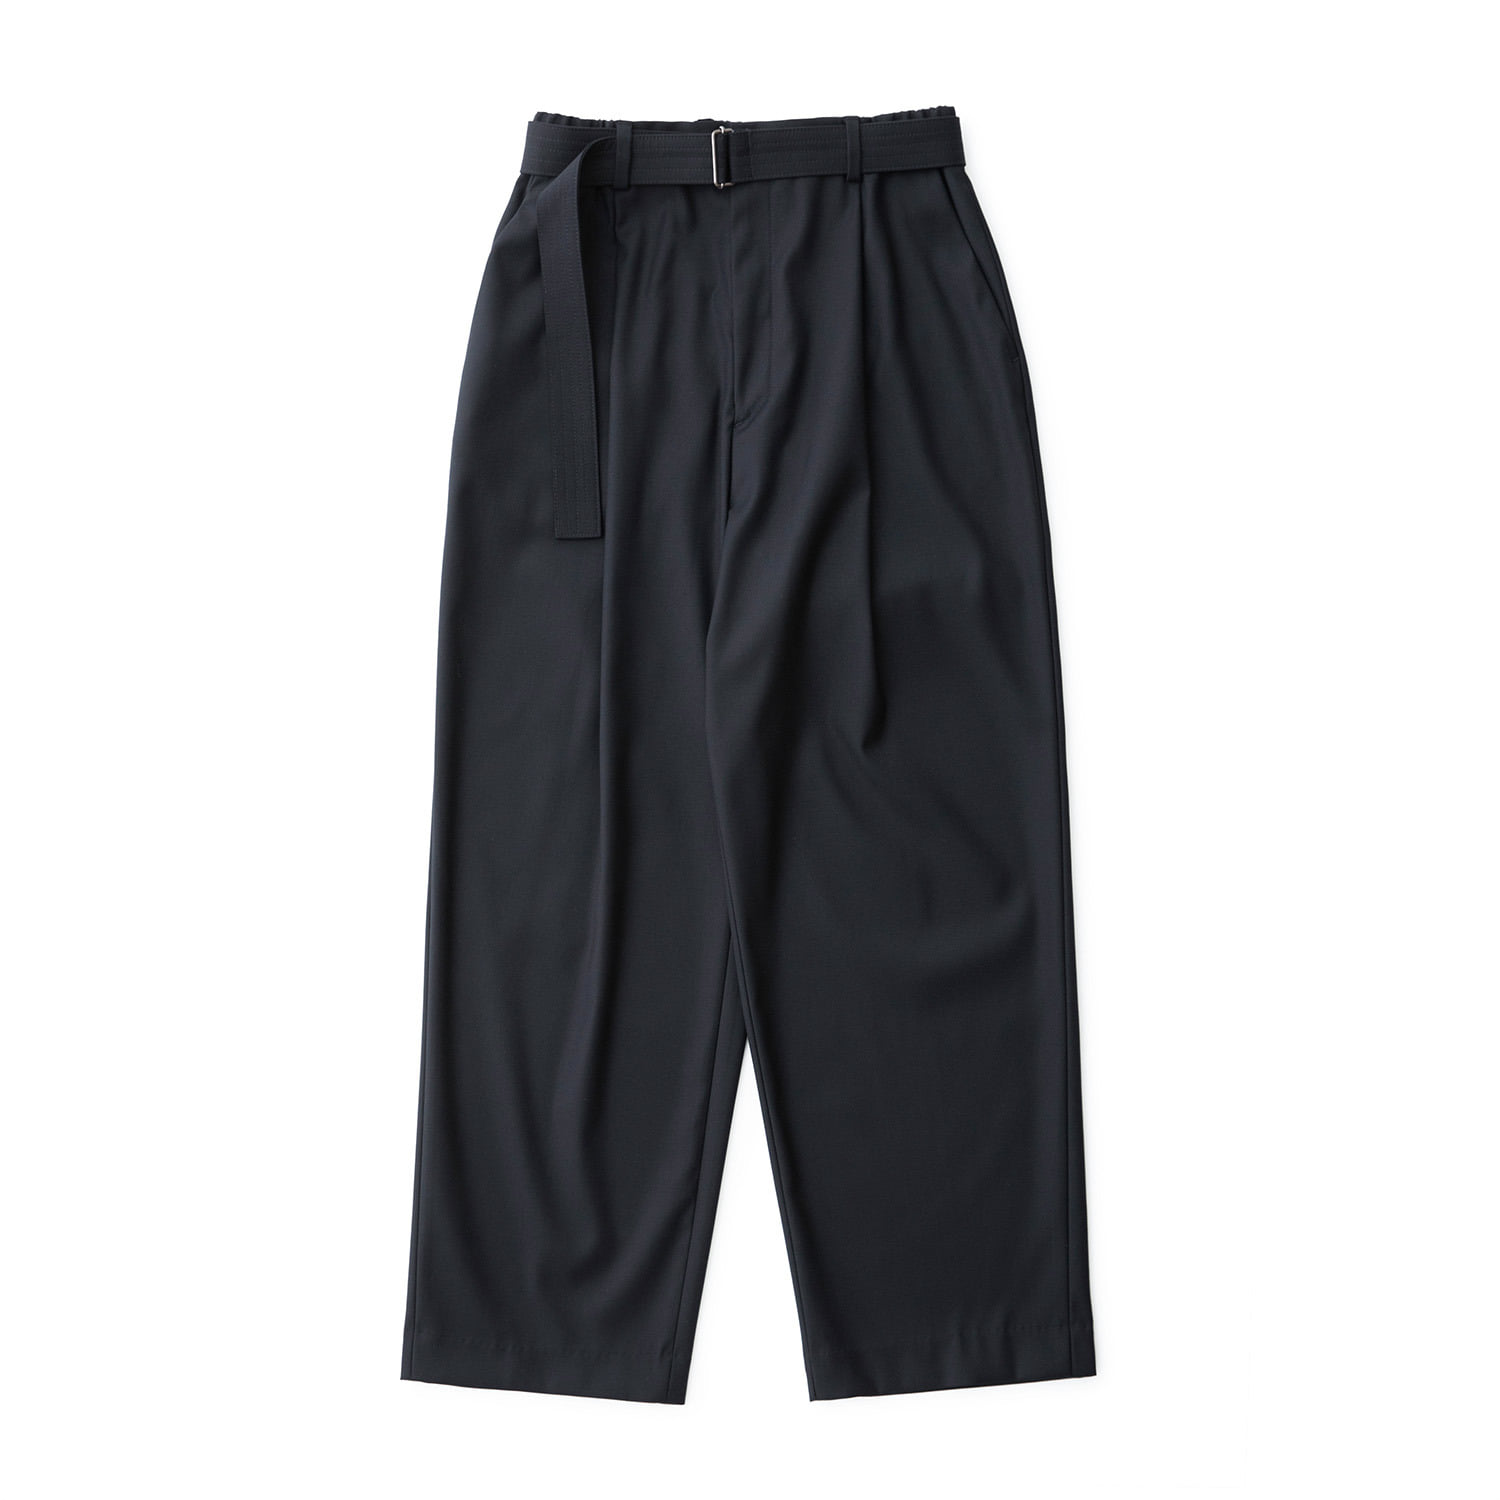 A/O 21SS Calm Banded Pants (Navy)